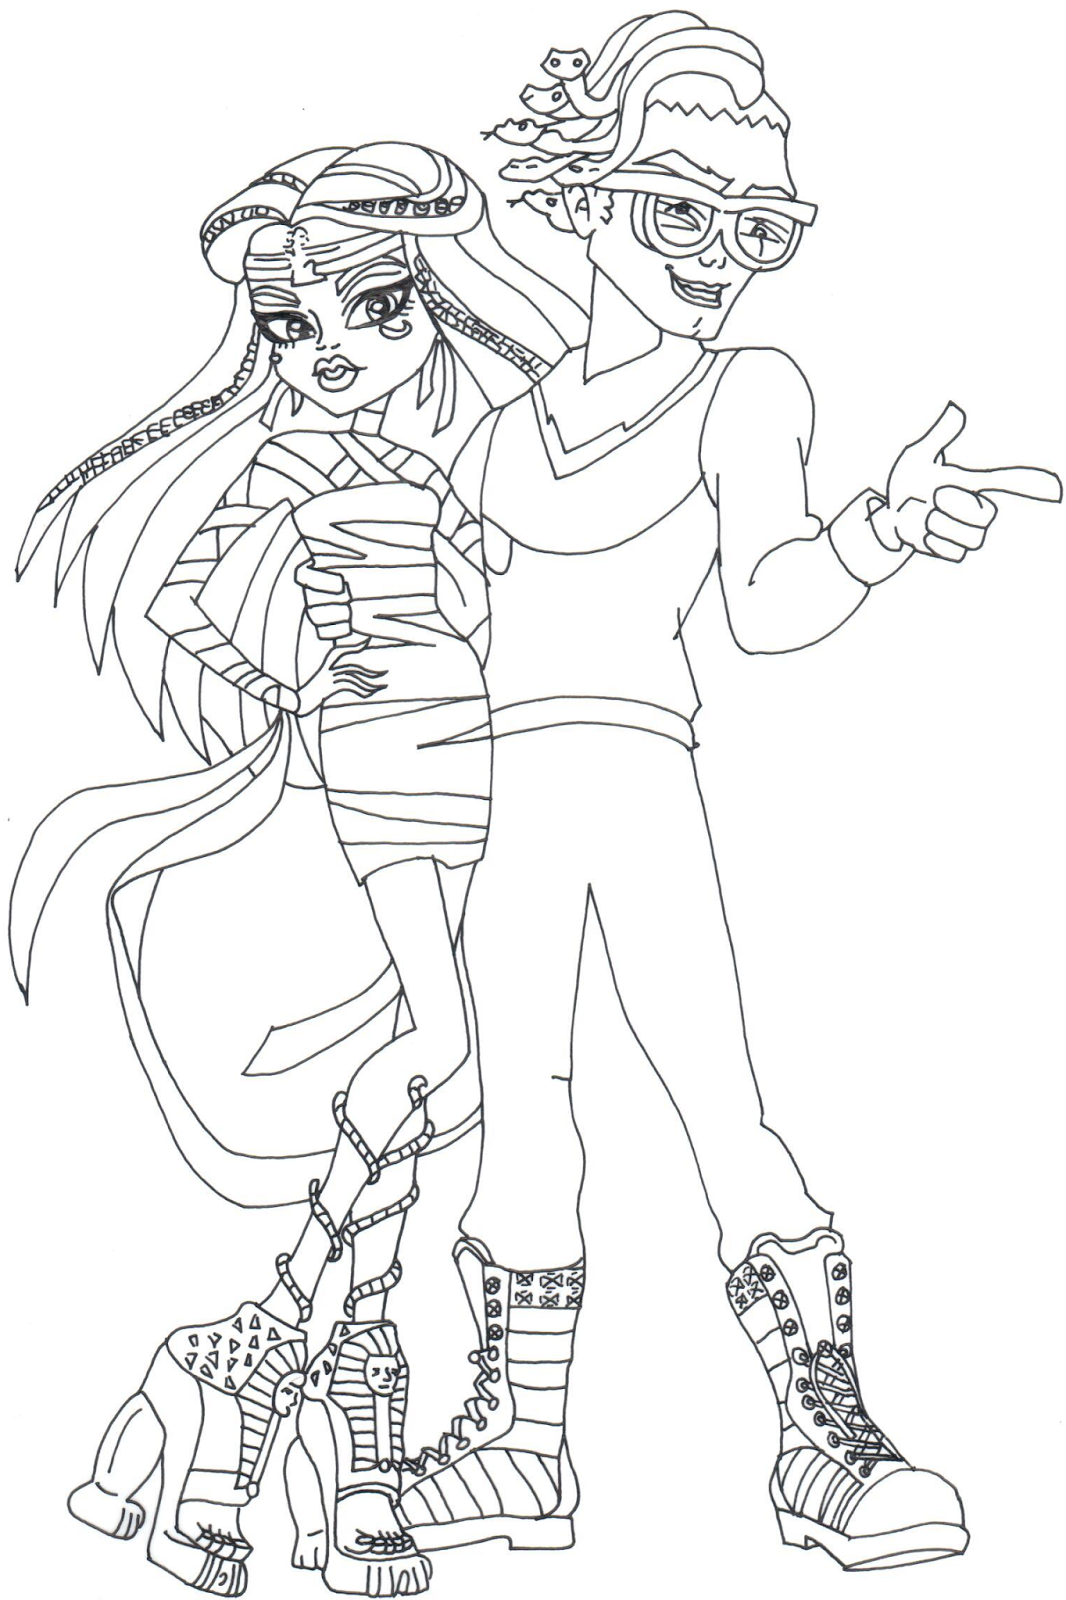 Boo York Cleo Deuce Monster High Coloring Pages Png 1066 1600